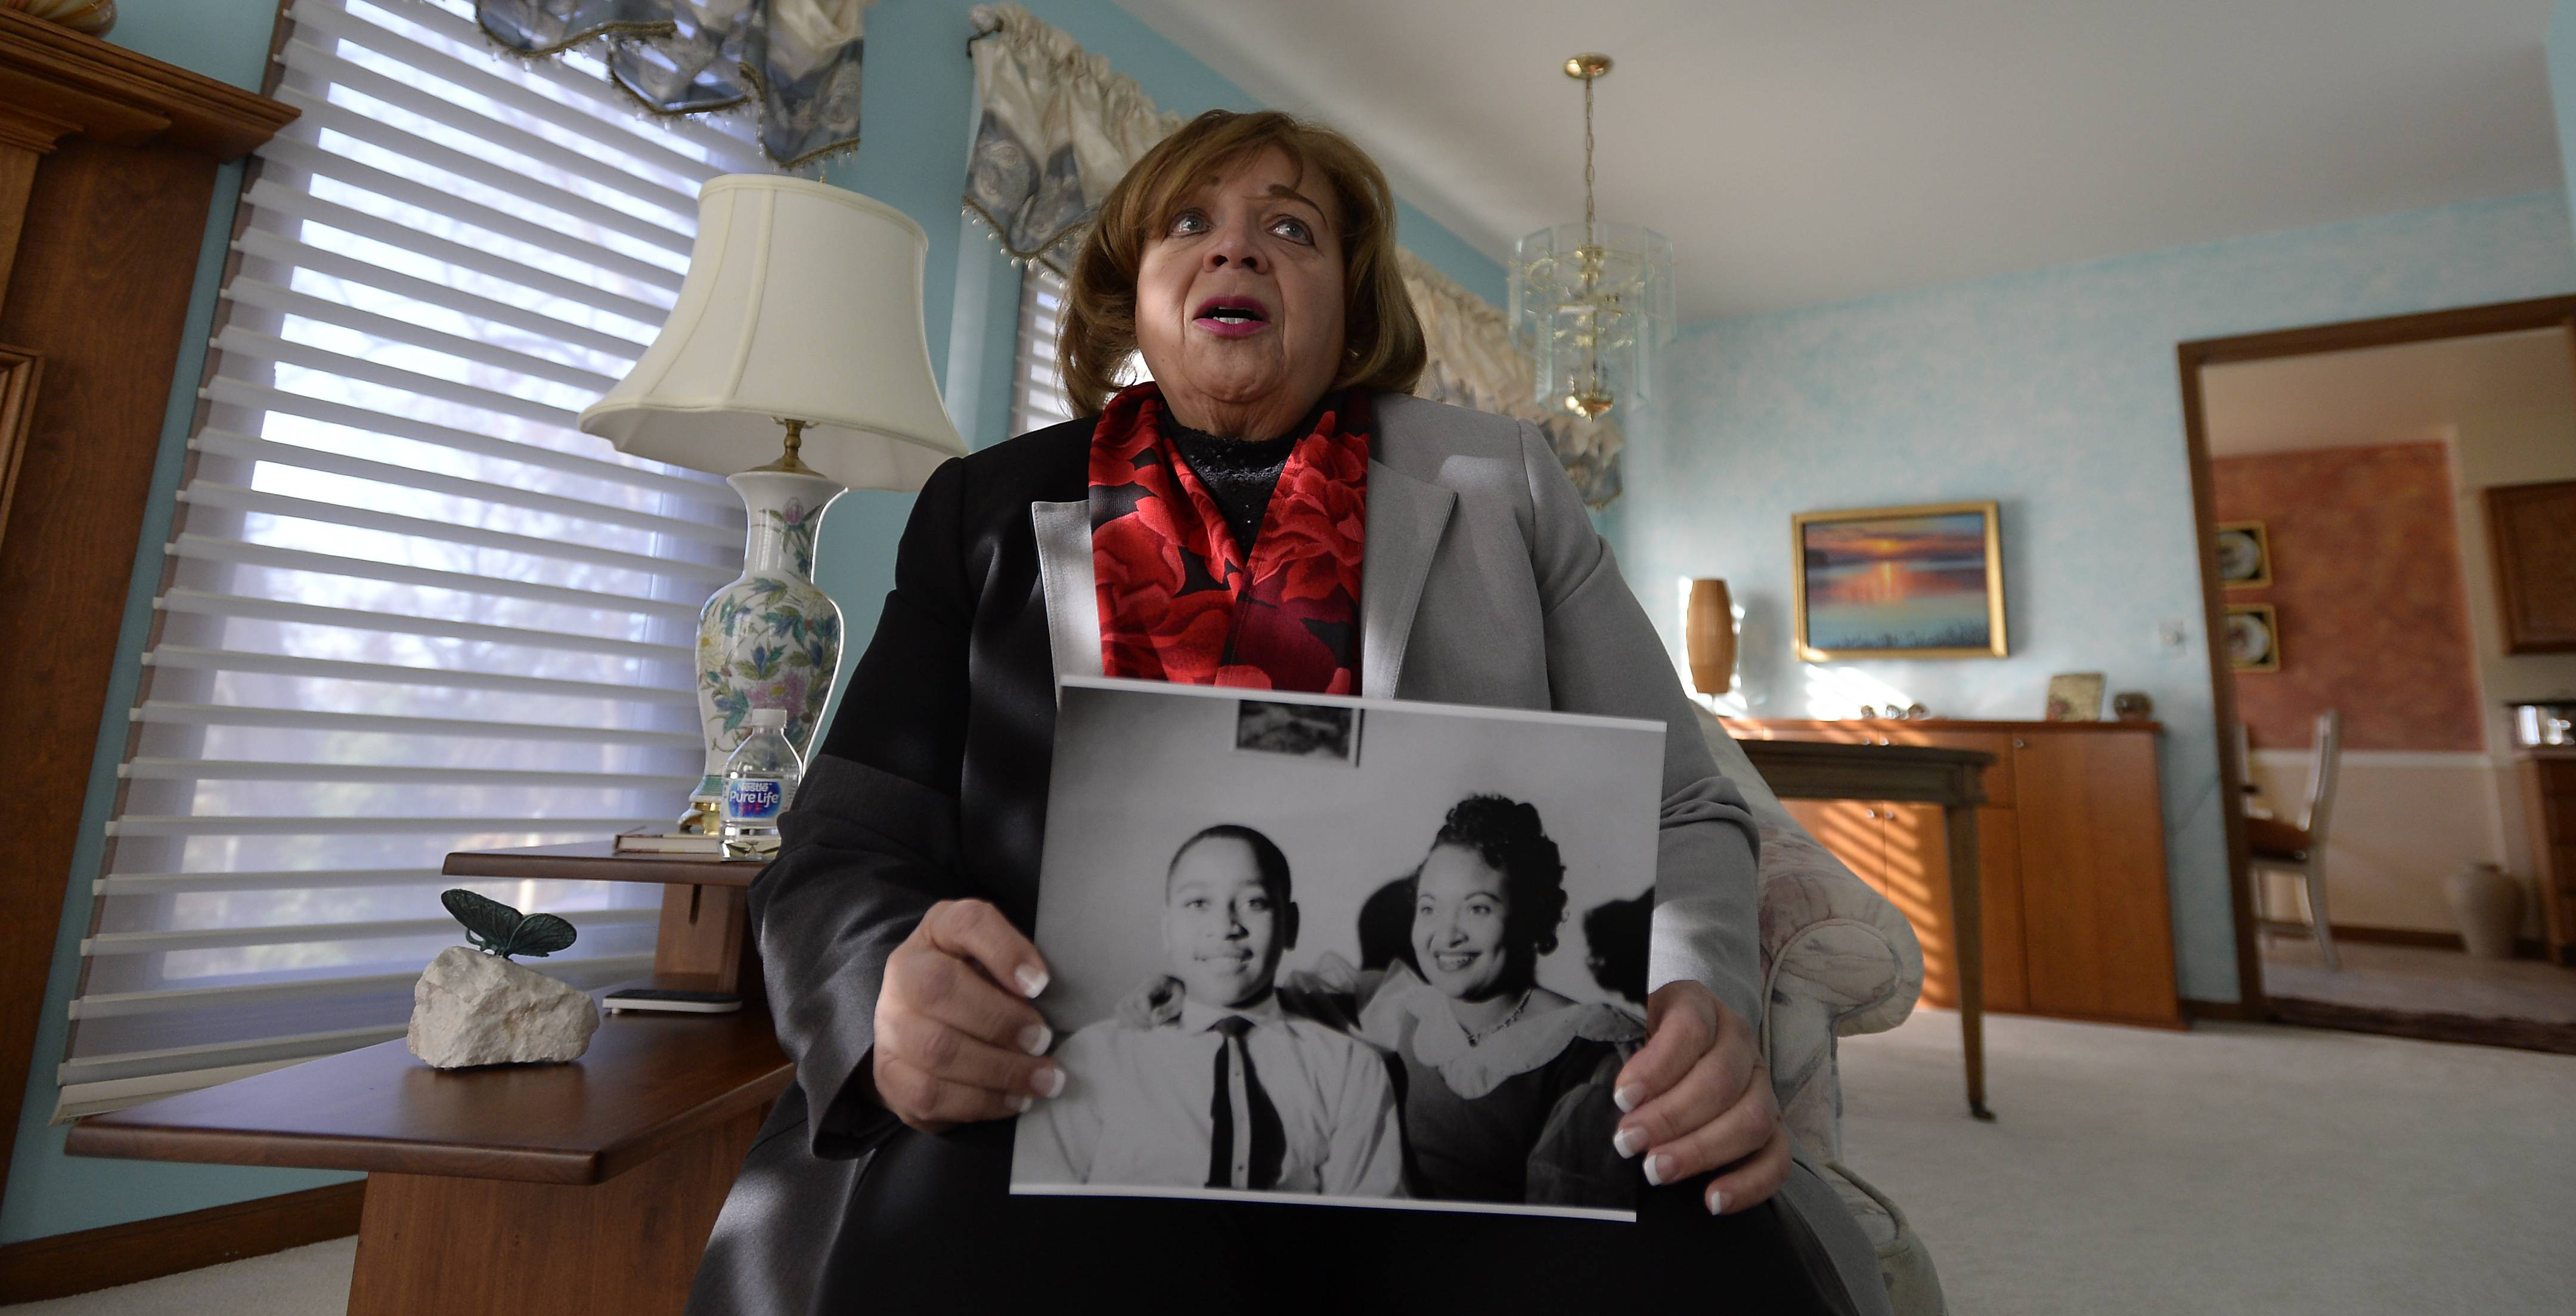 'For more than 50 years, I never spoke of Emmett': Till's cousin opens up in PBS documentary